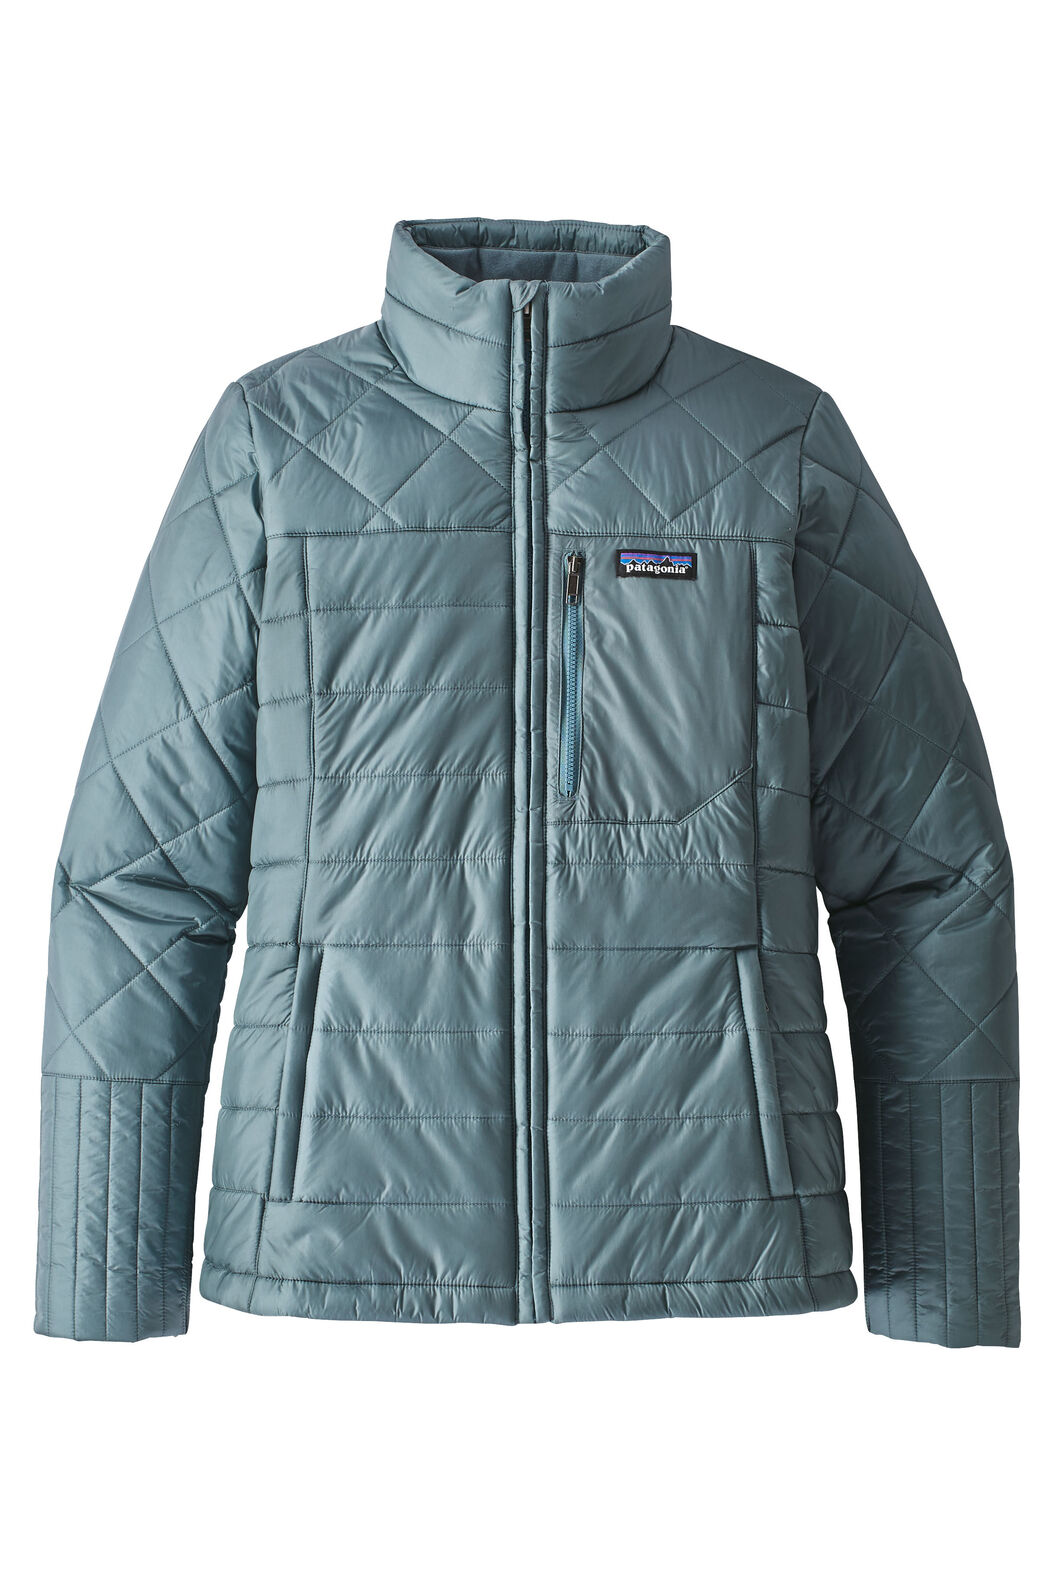 Patagonia W's Radilie Jacket, Shadow Blue, hi-res